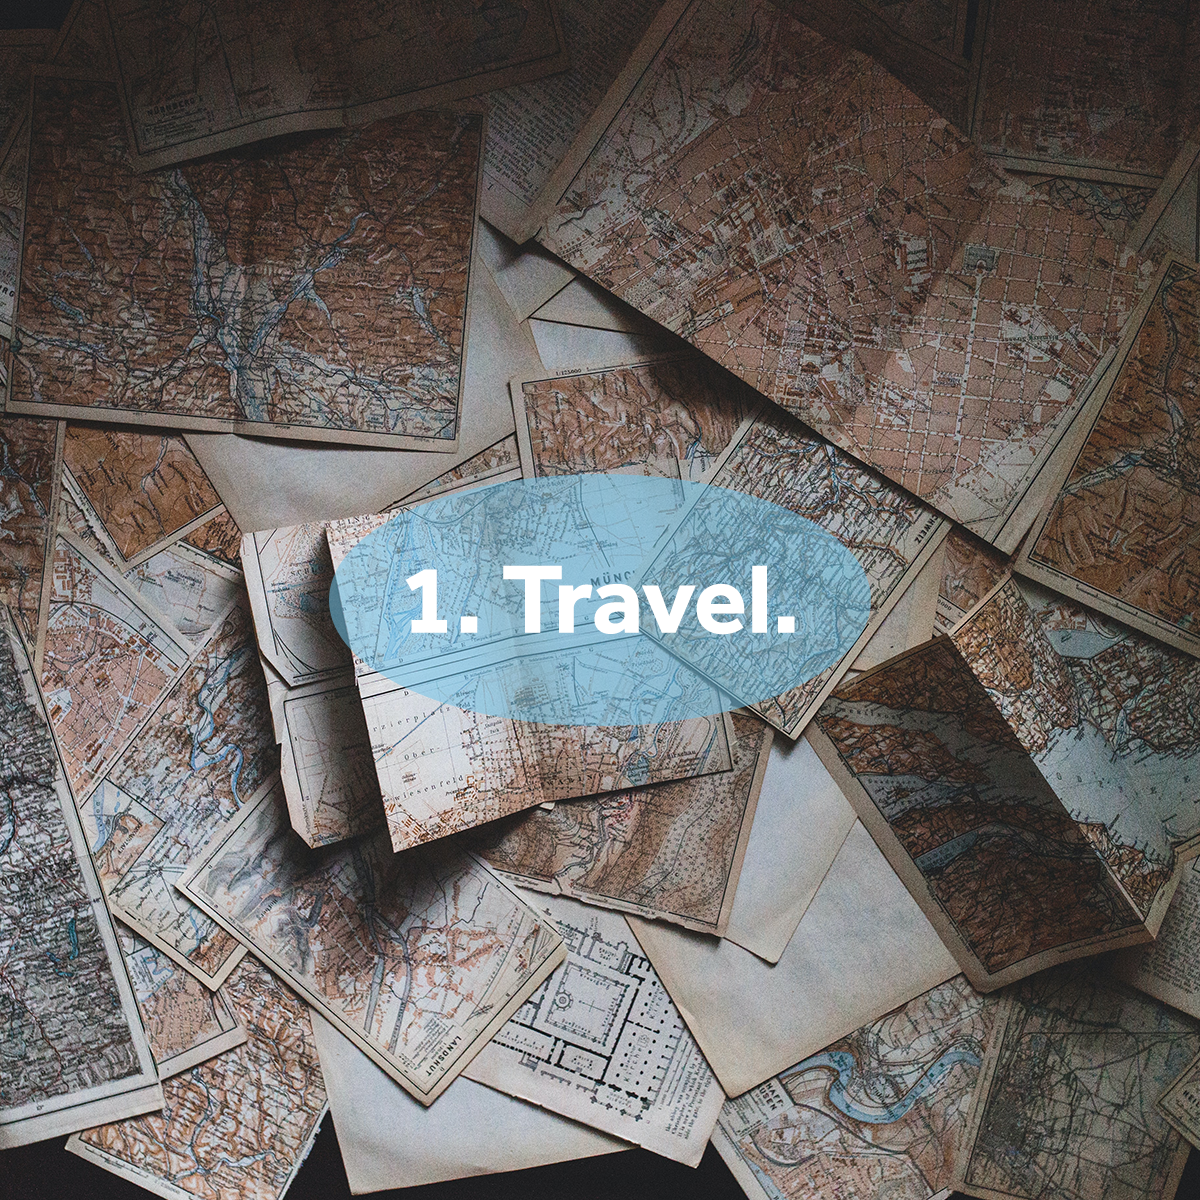 Travel - reasons to study abroad